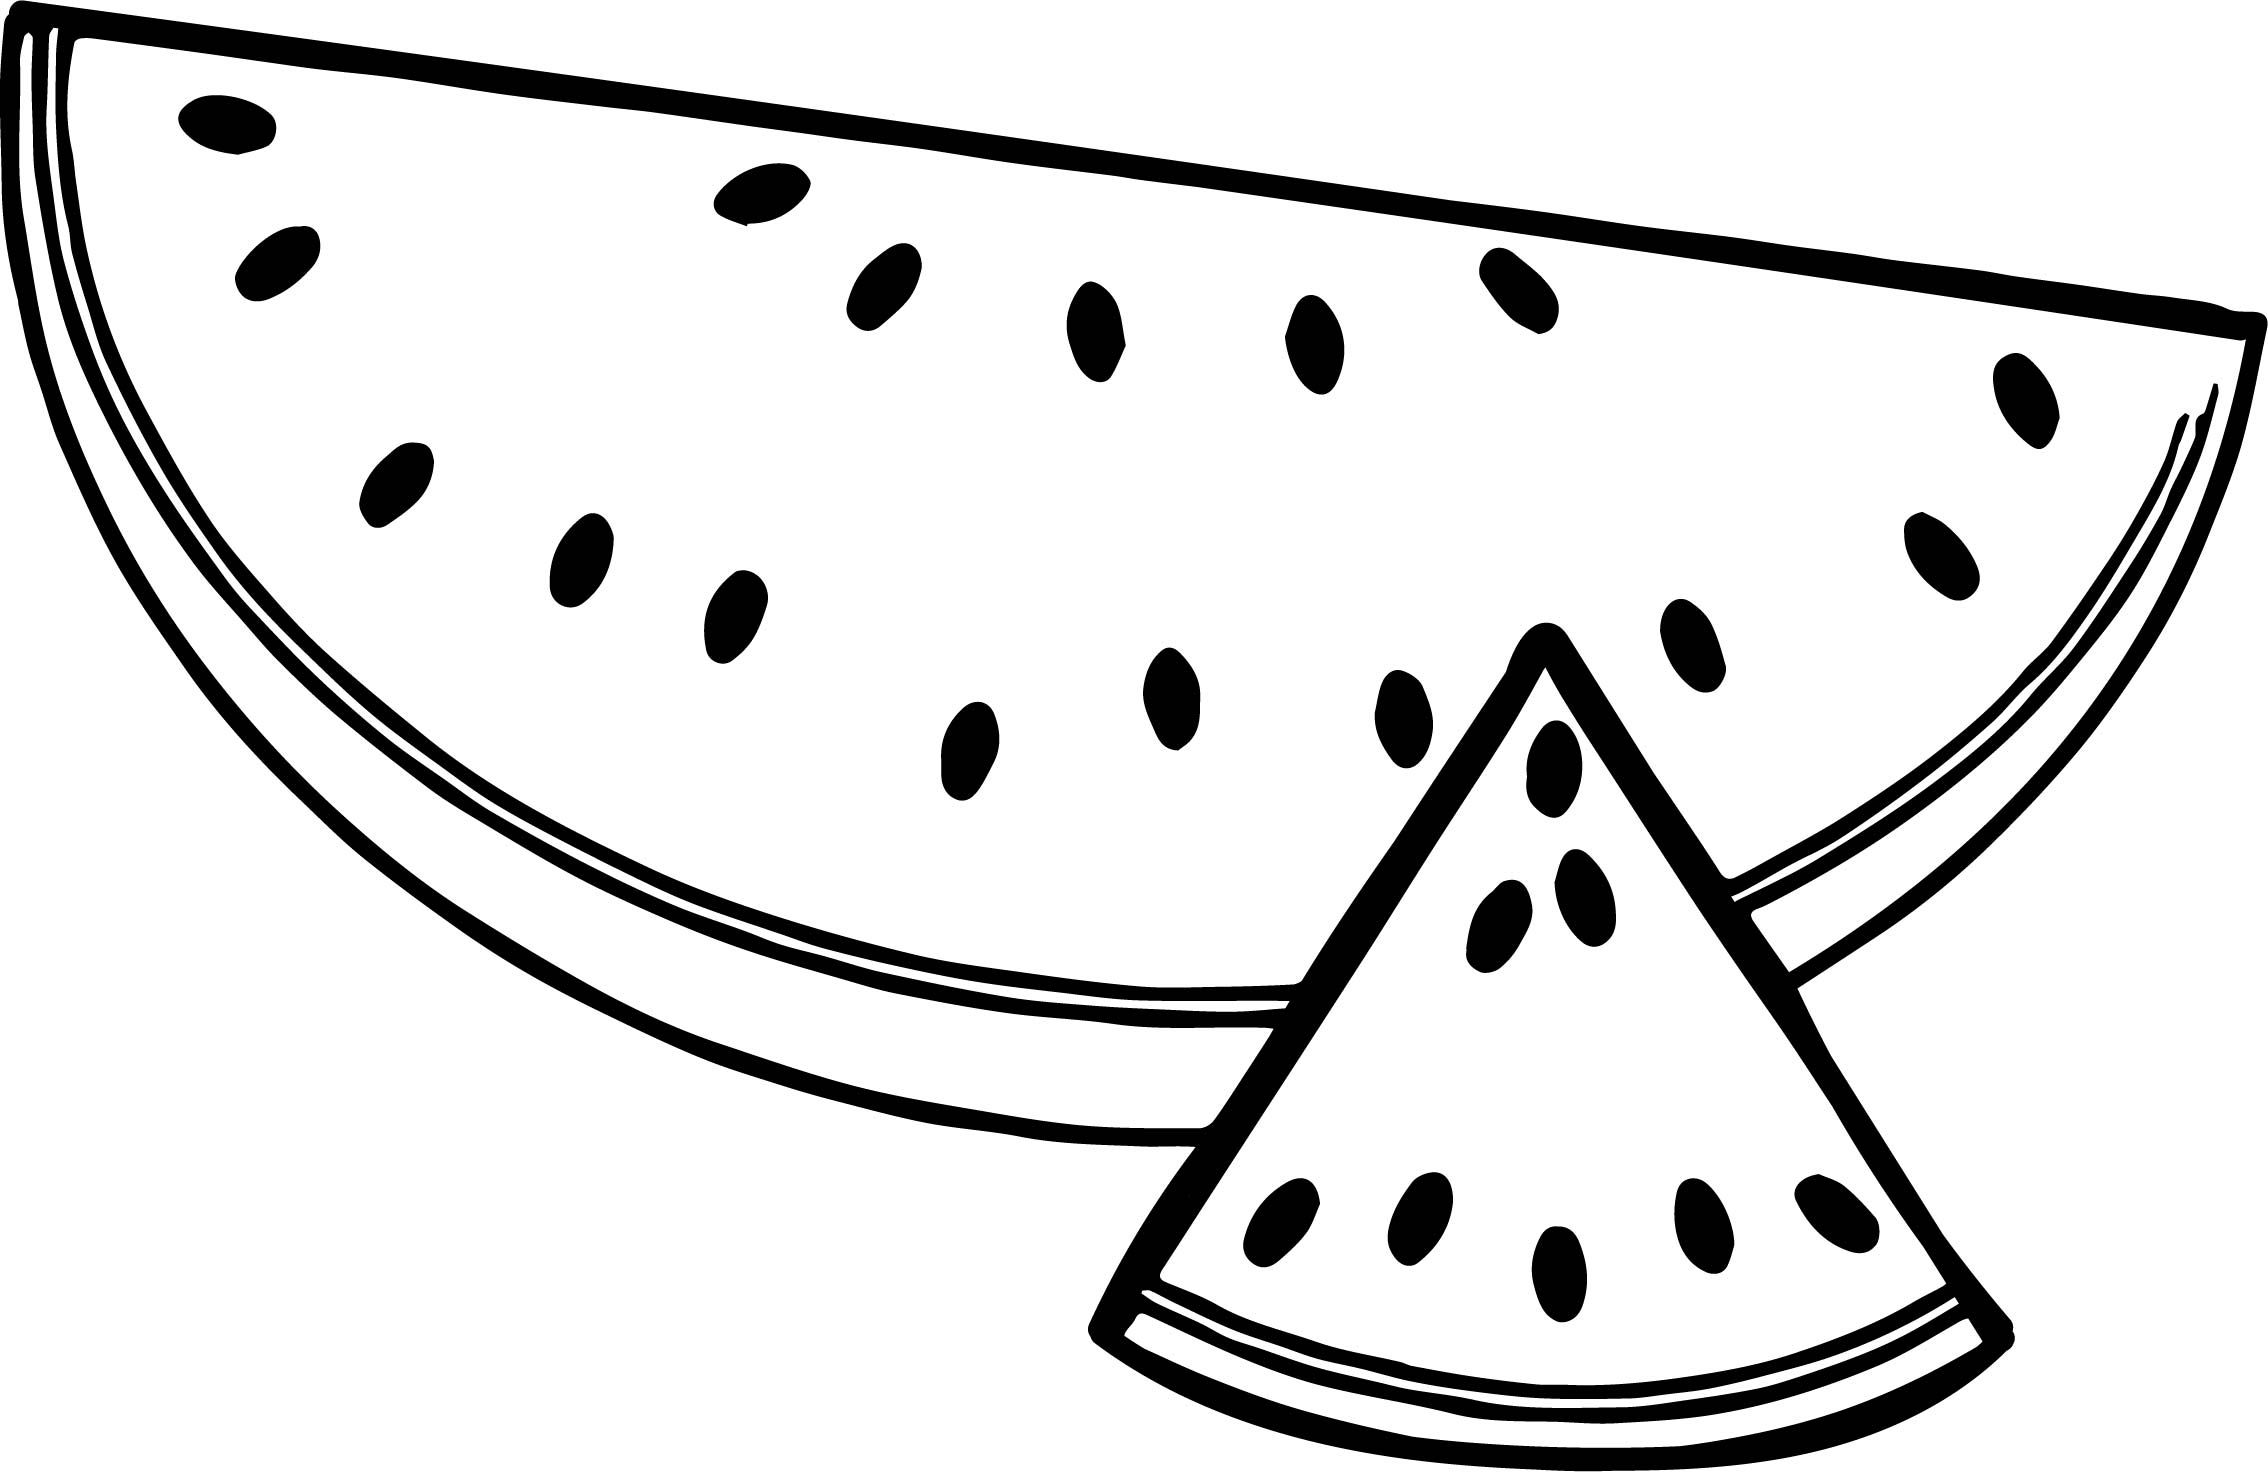 Watermelon Coloring Page Download Free Watermelon Coloring Page